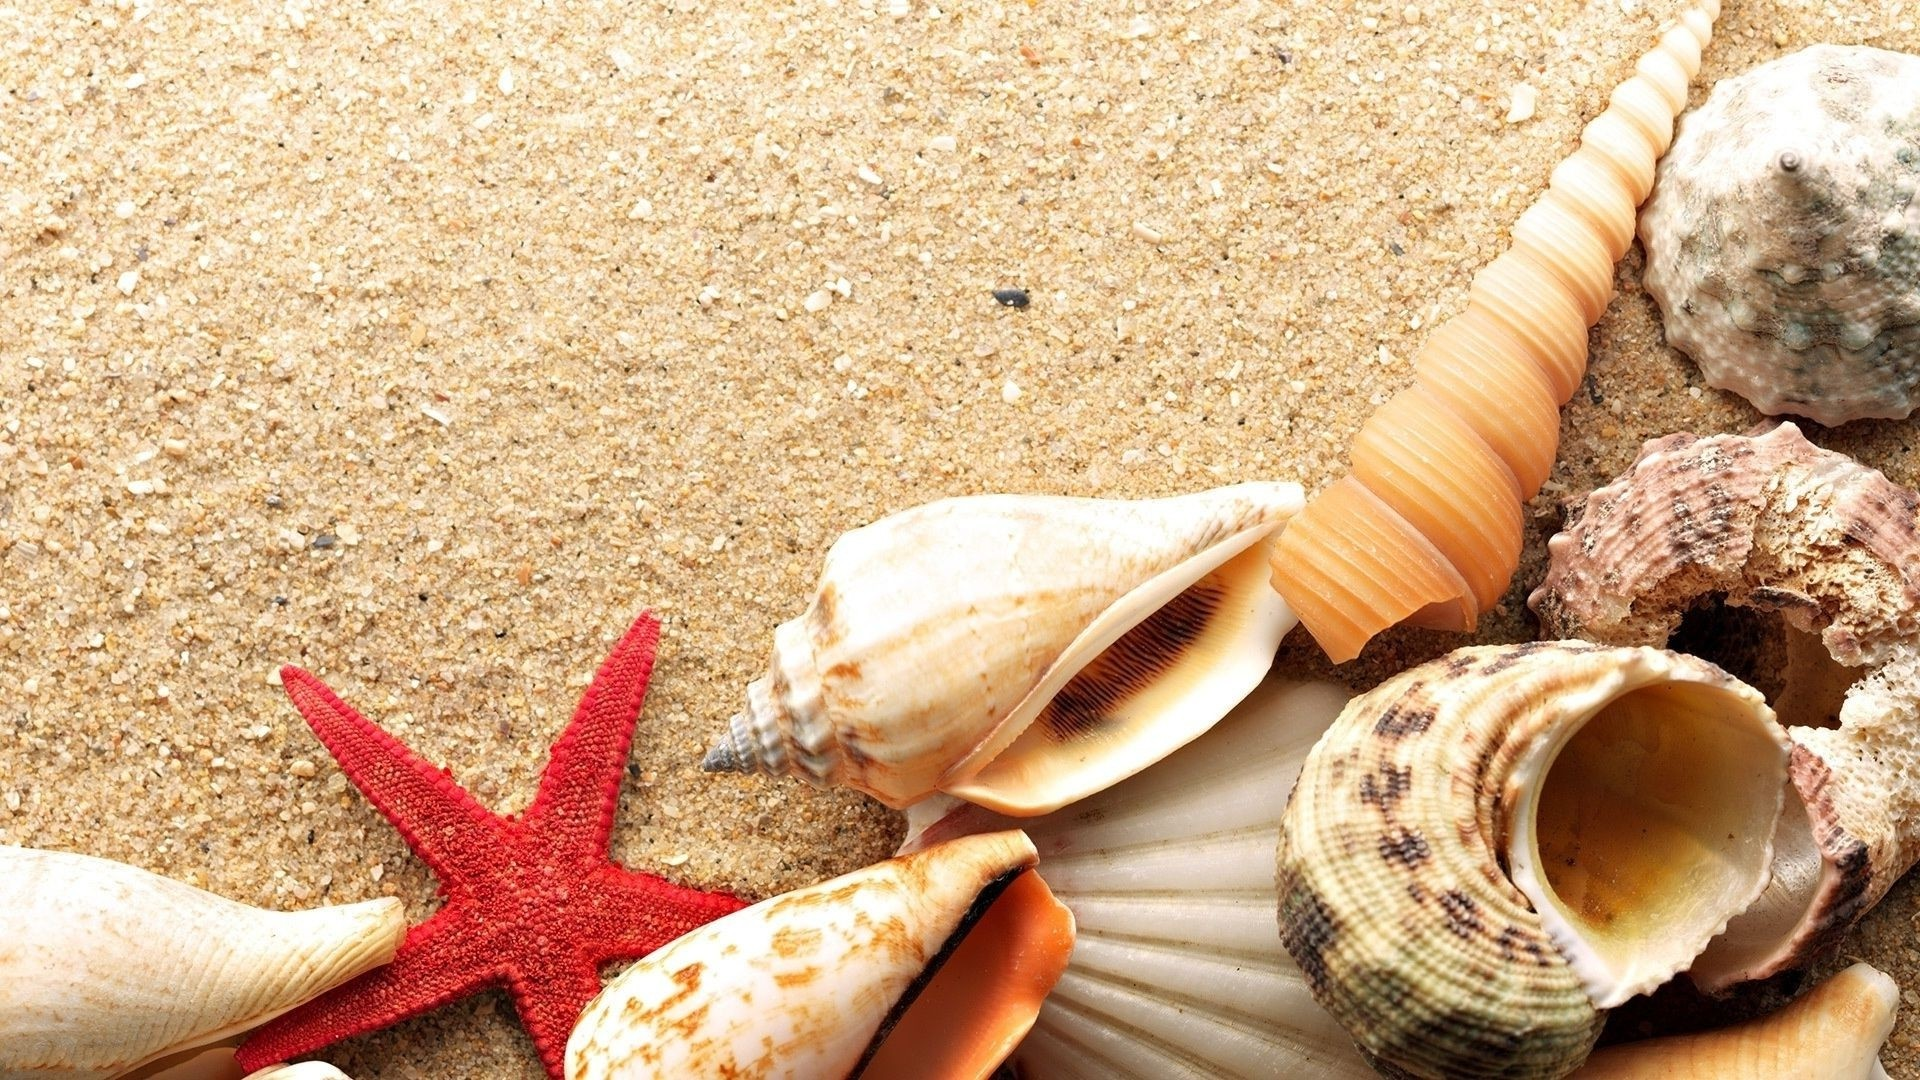 Seashell wallpaper photo hd